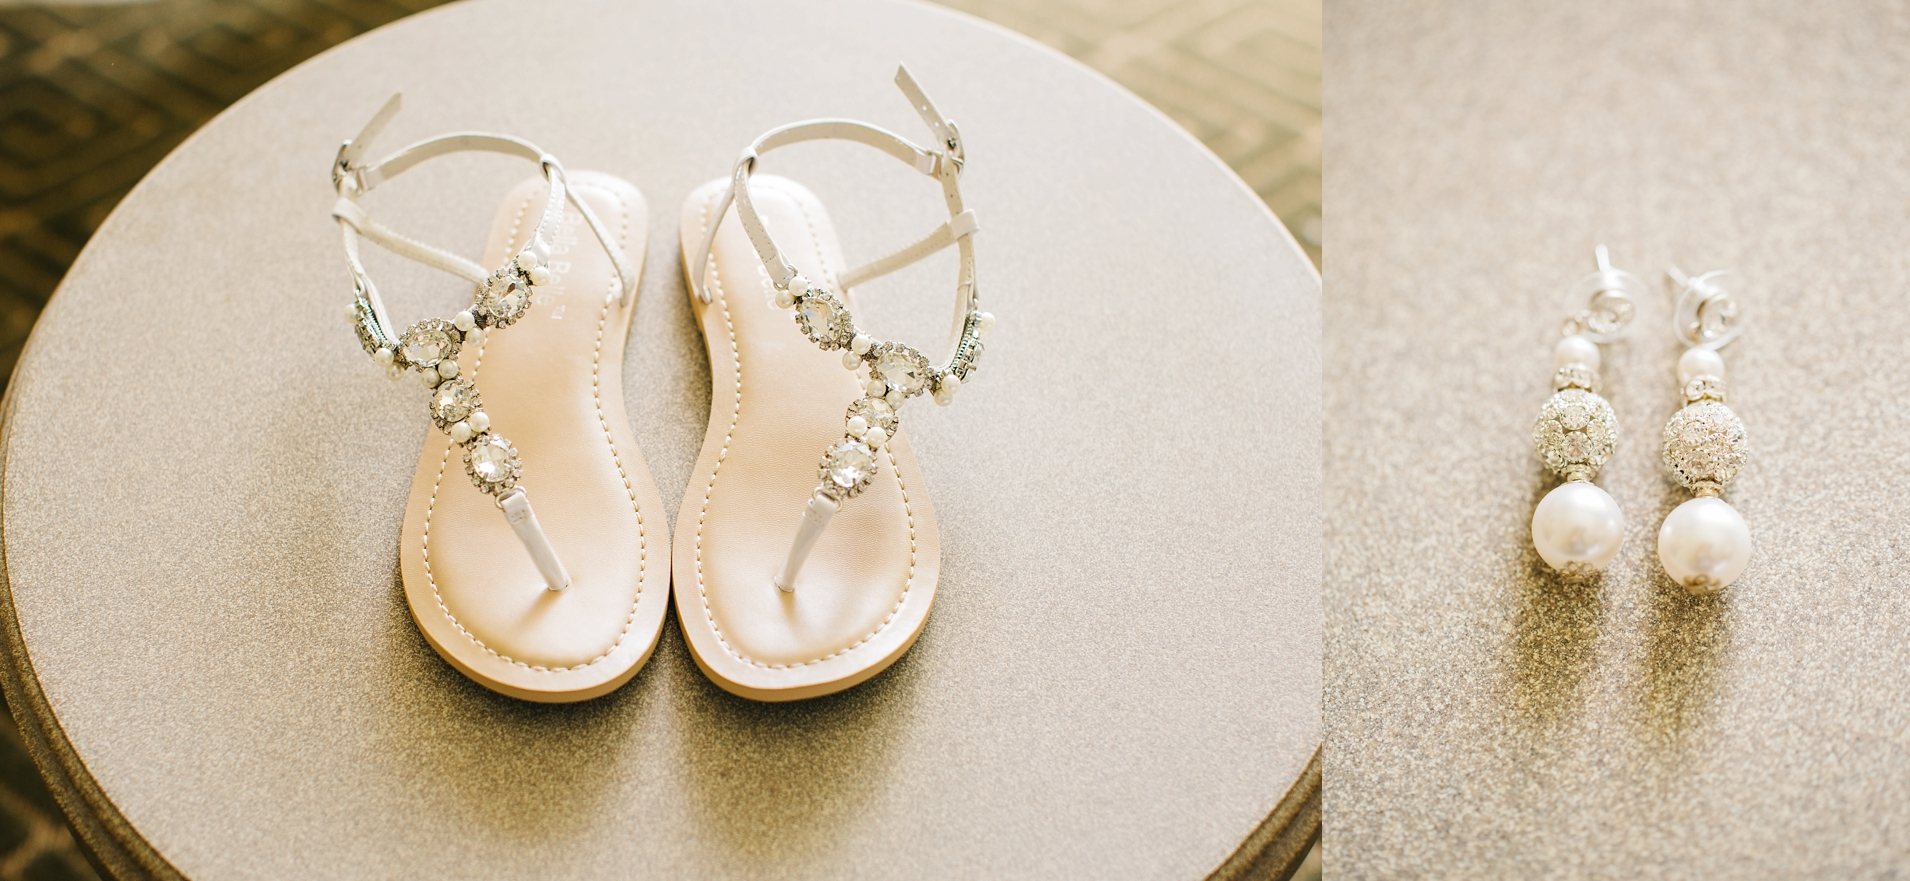 Bridal Shoes and Jewelry in Orange County, CA - Brittney Hannon Photography